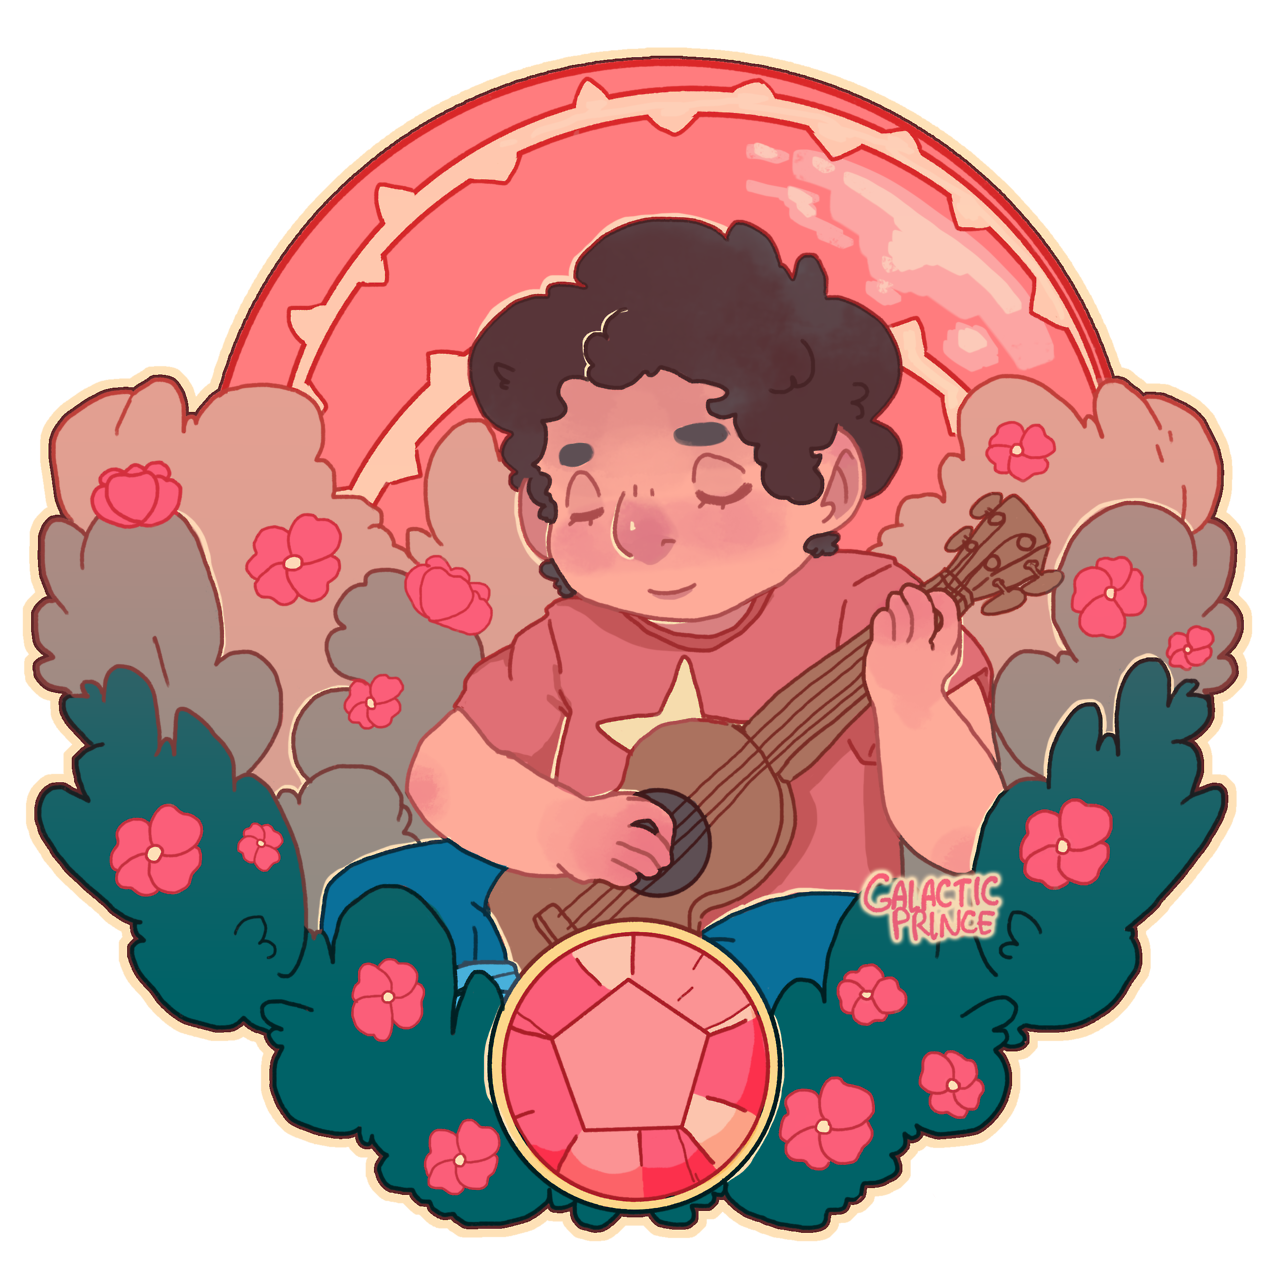 Hello There!|17|Genderfluid (They/Them) You've stumbled onto my art blog. Hover over and click the notes square to see the full image. Personal Blog: galactic-beans